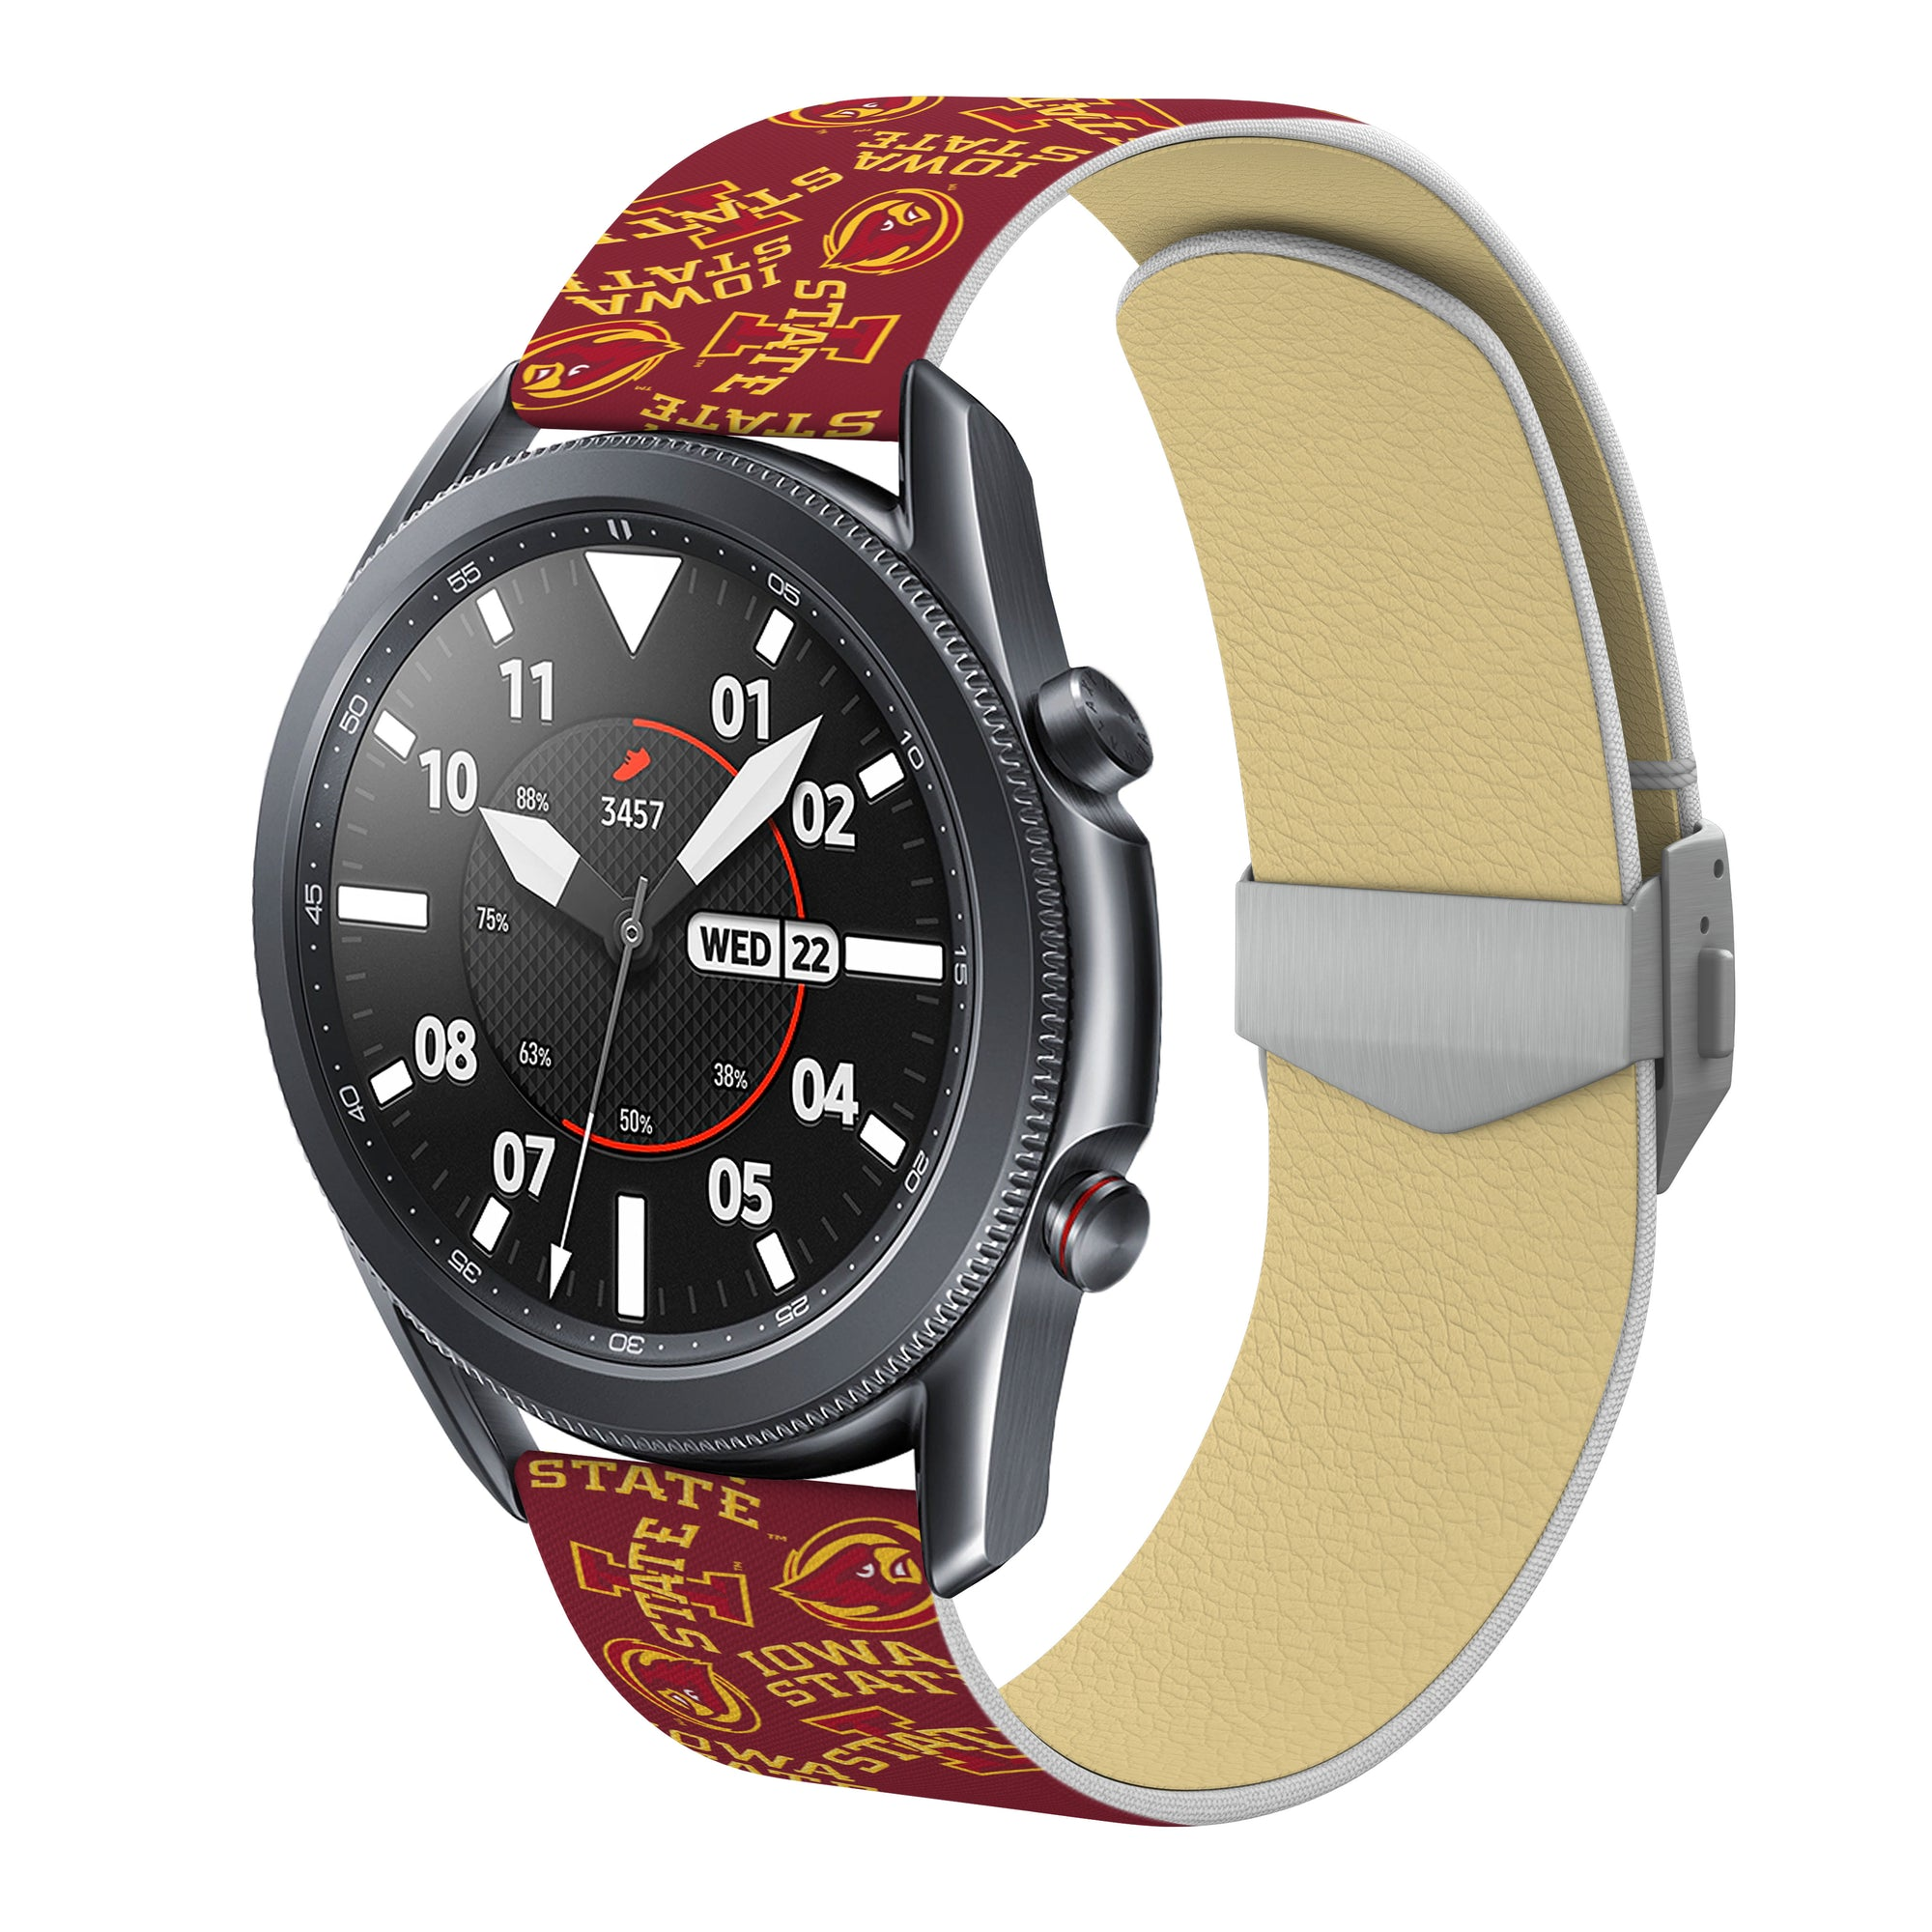 Iowa State Cyclones Full Print Quick Change Watch Band With Engraved Buckle - AffinityBands